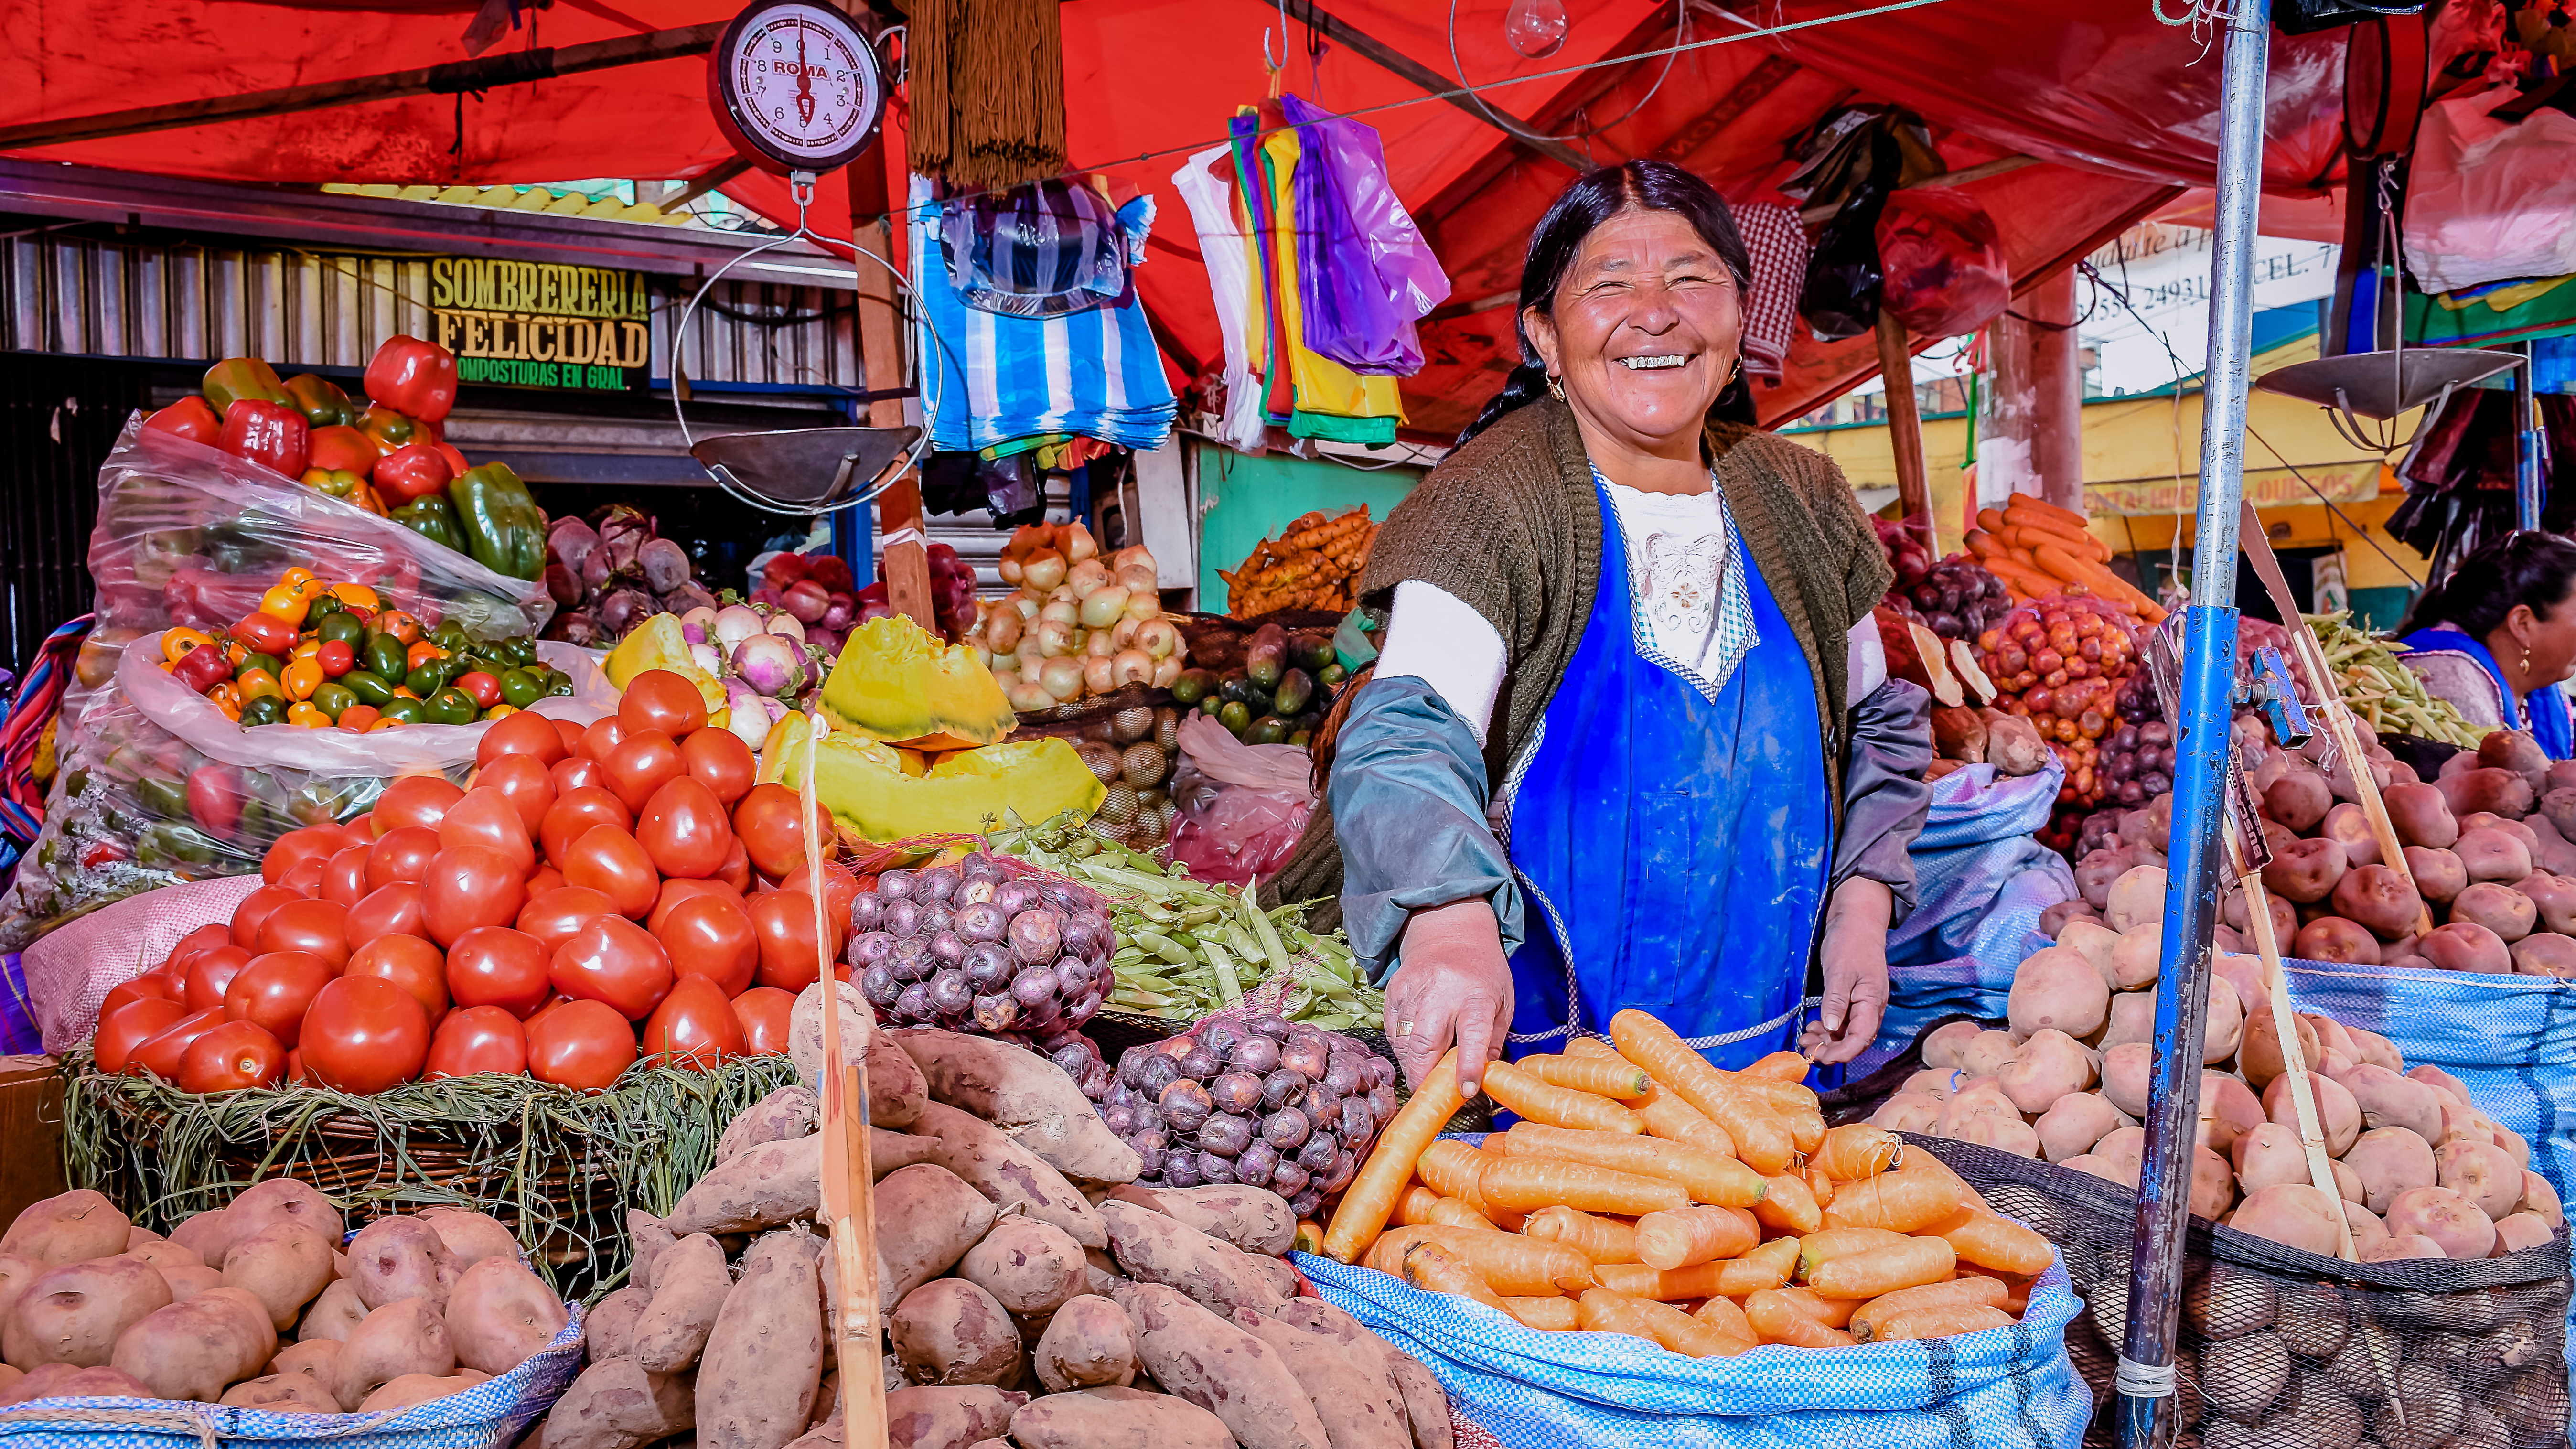 The Bolivian Diet Women S Voices And Choices International Institute For Environment And Development